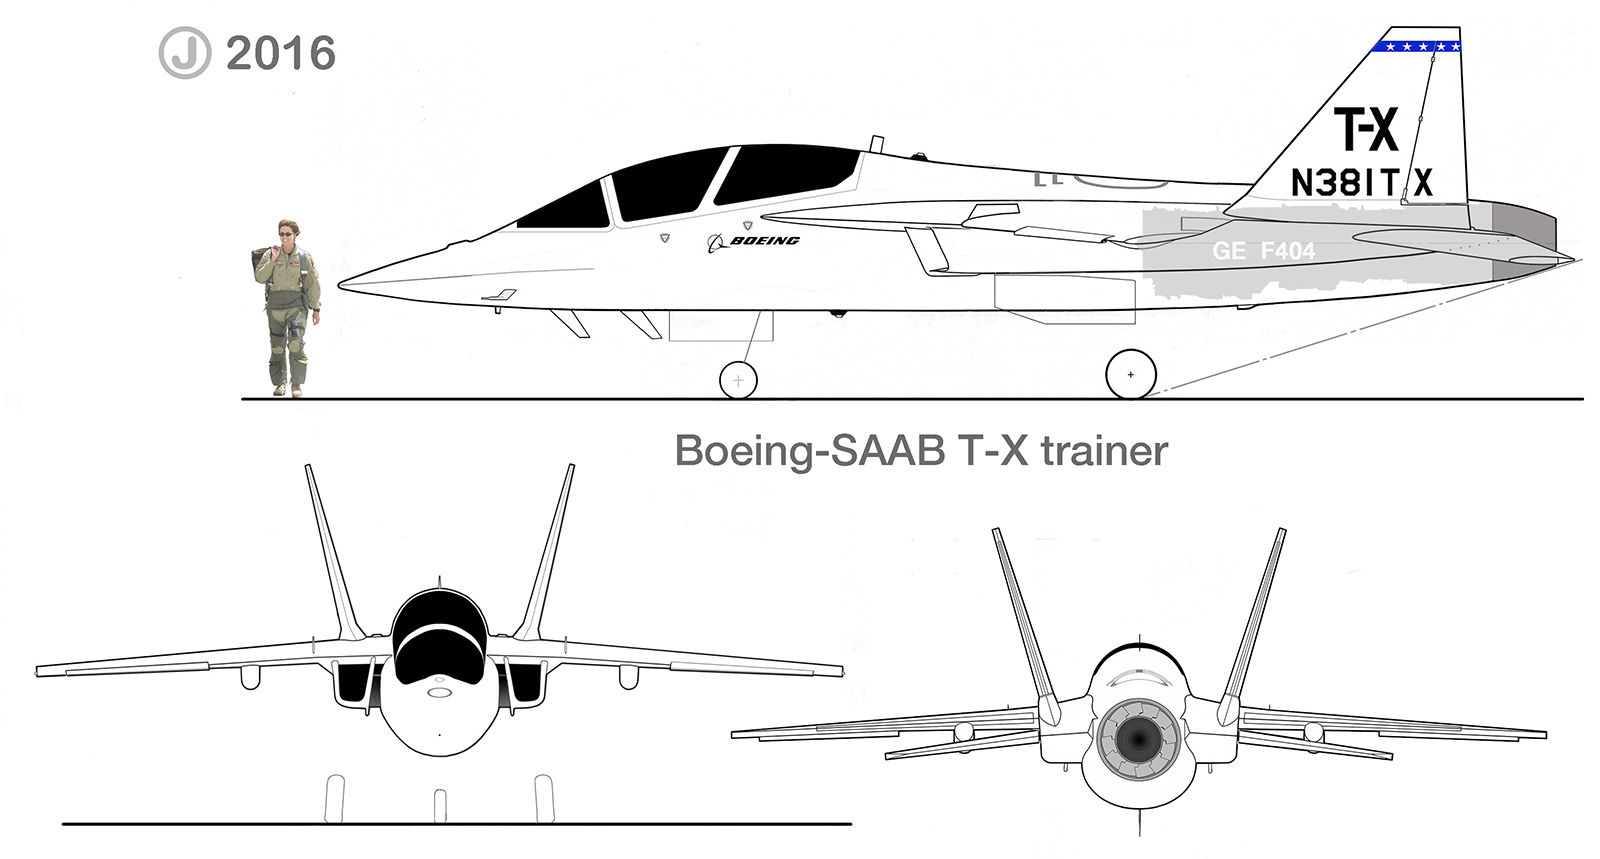 Boeing-SAAB_T-X_w_engine_scale_figure_5-4-2017_copy.jpg